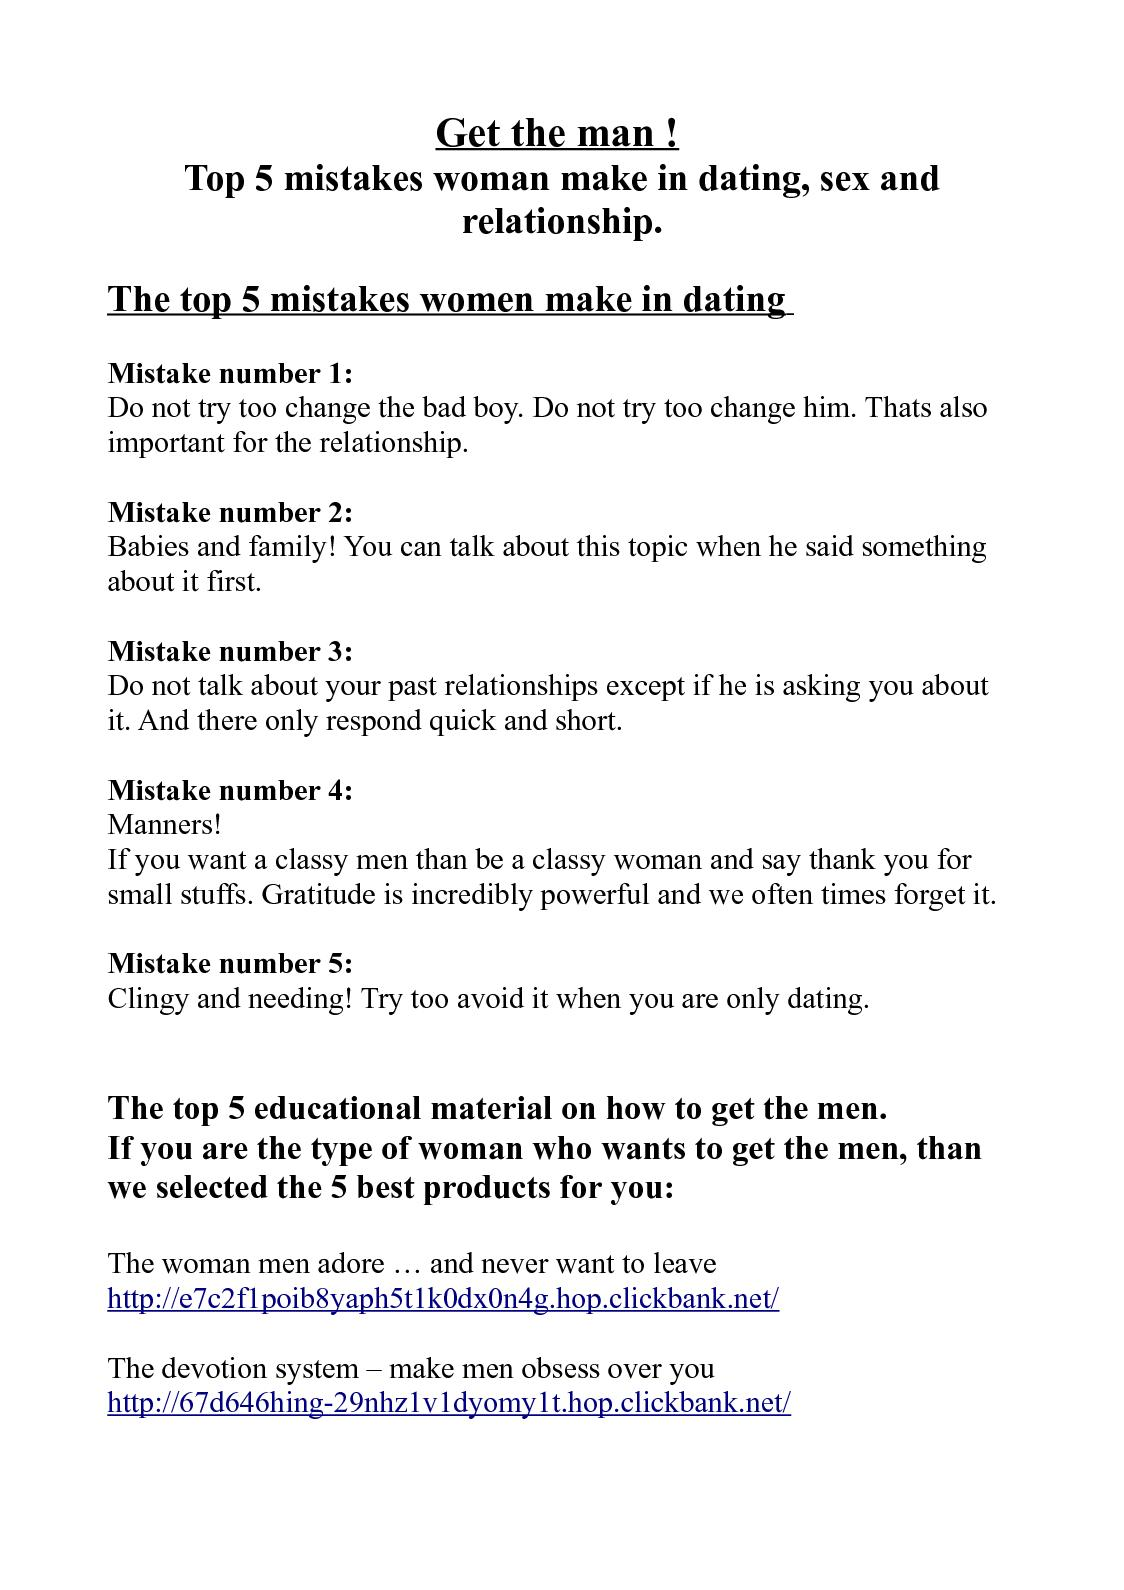 Calaméo - Top 5 mistakes woman make in dating, sex and